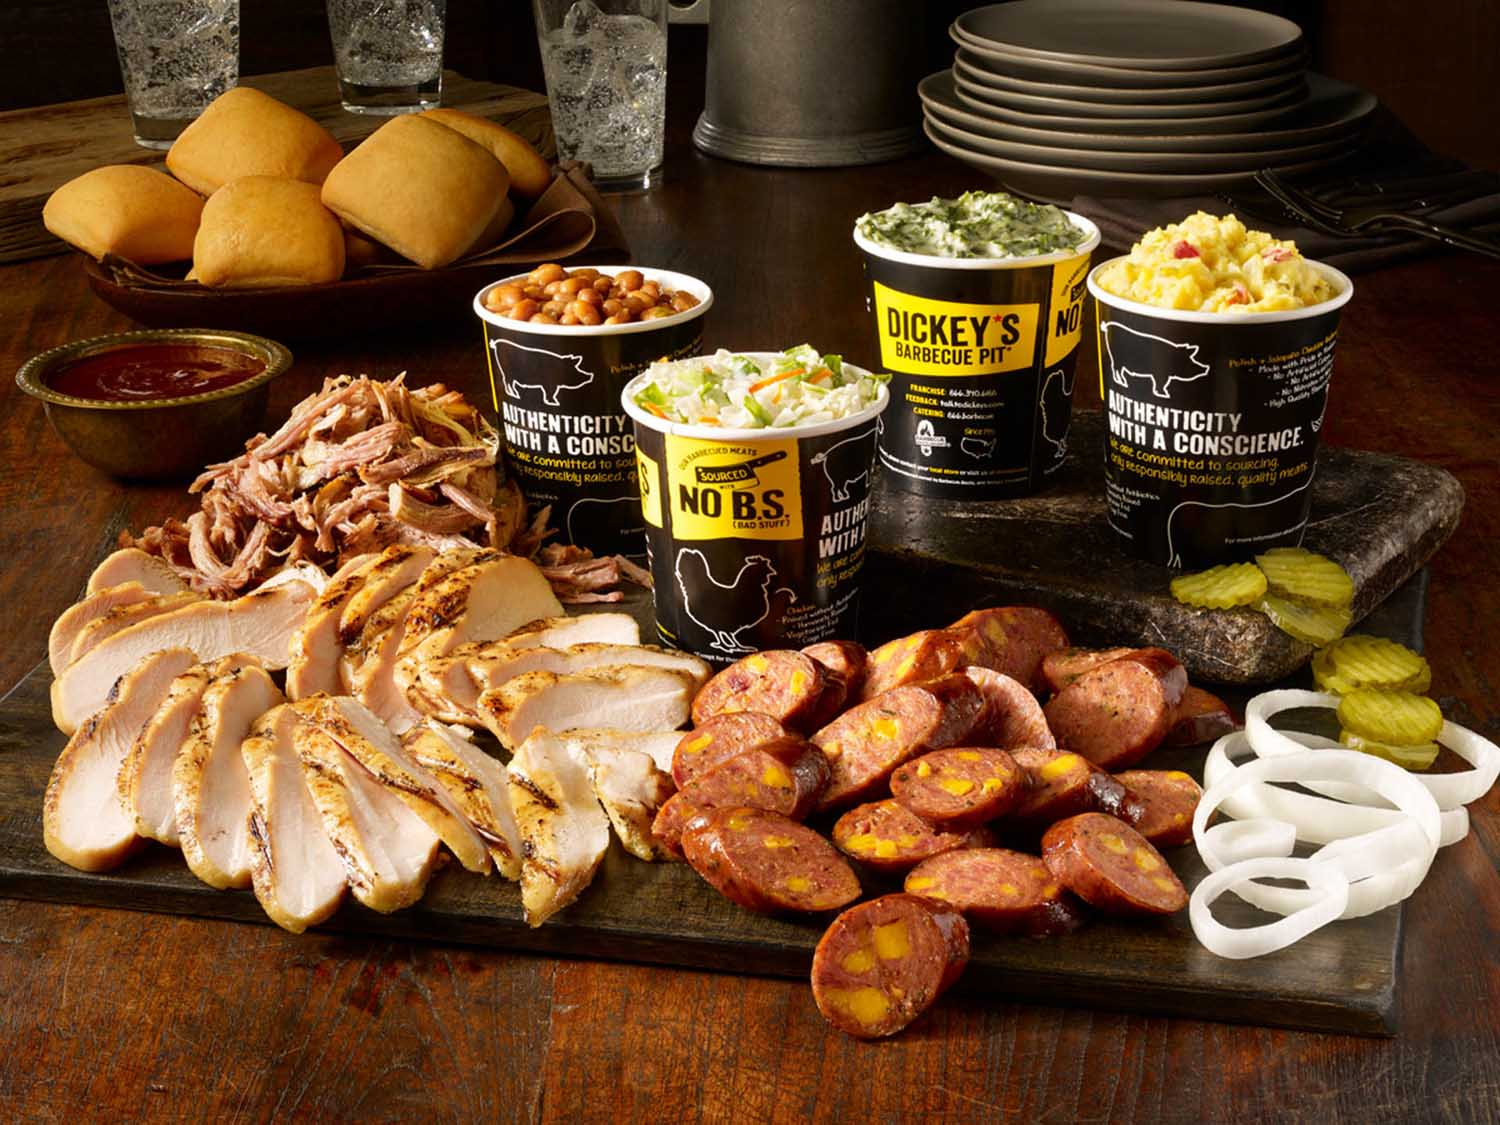 Score this Football Season with Double Your Sides at Dickey's